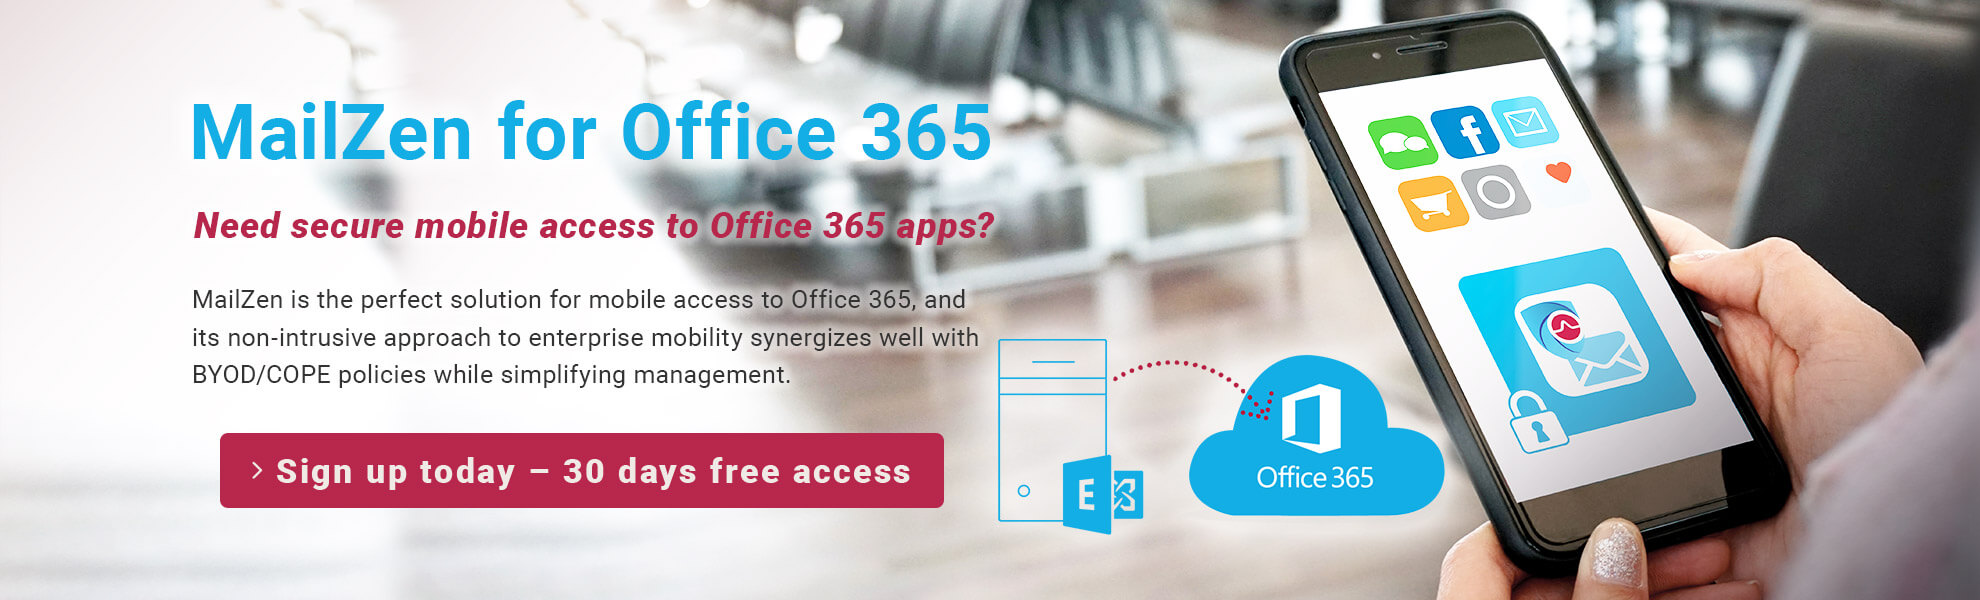 MailZen for Office 365 / Need secure mobile access to Office 365 apps? / Sign up today – 30 days free access